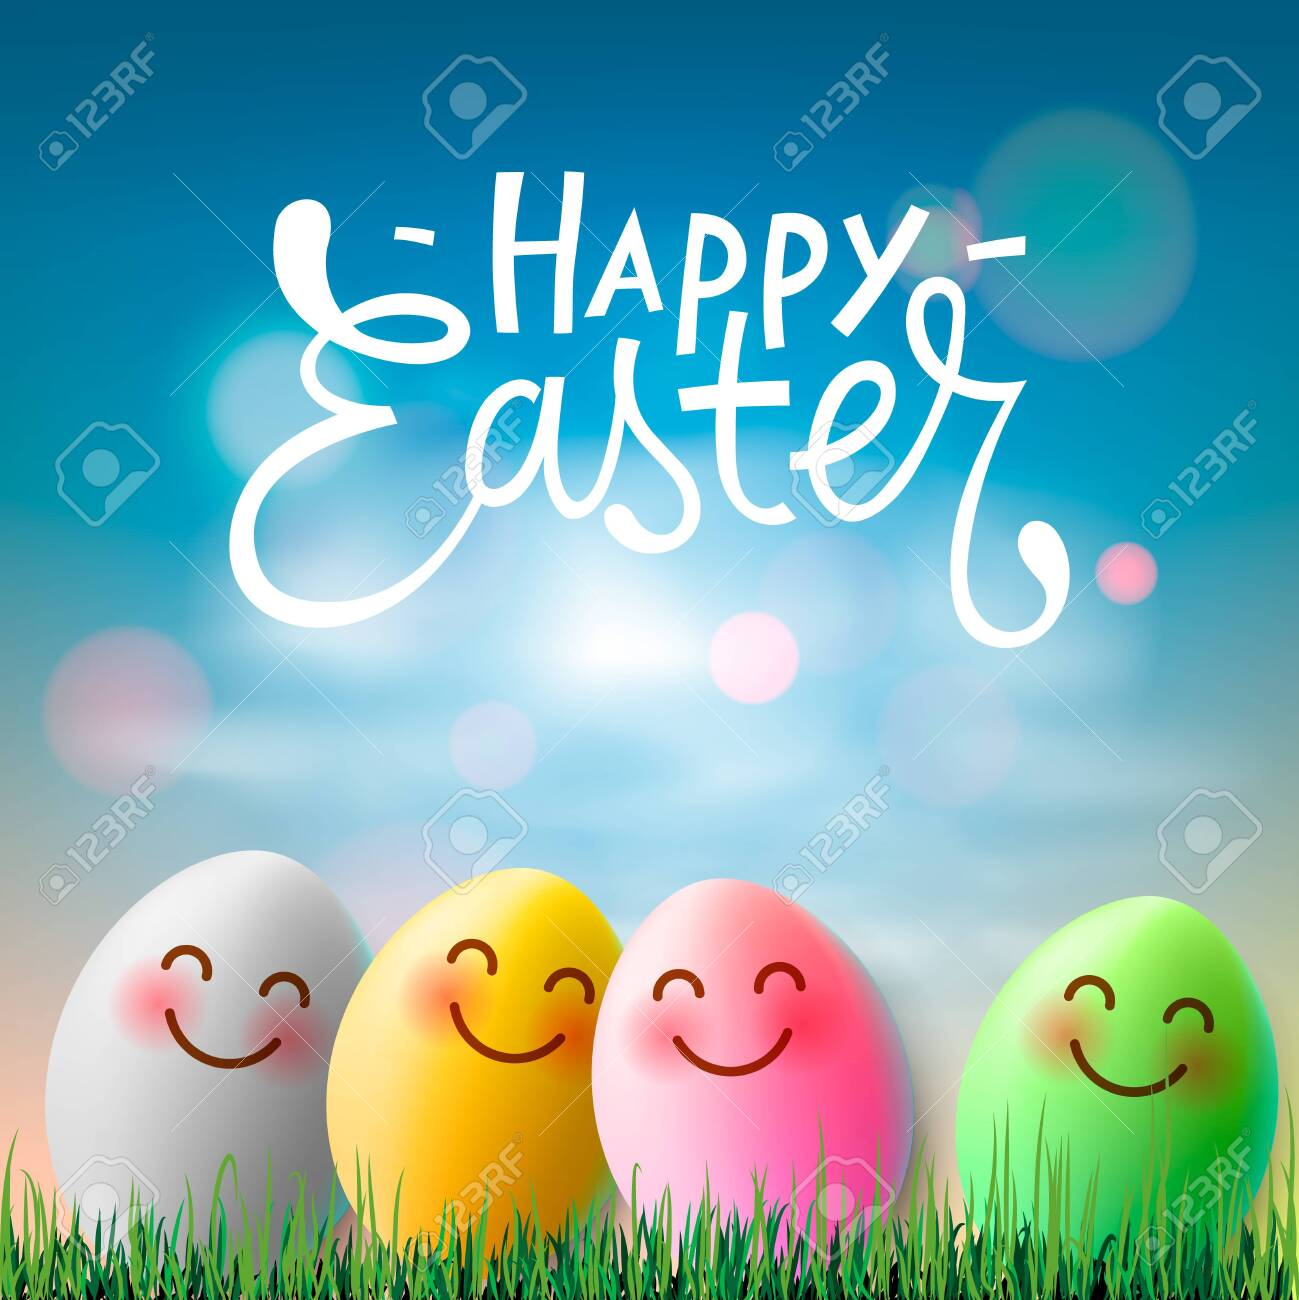 124544775-happy-easter-colorful-easter-e